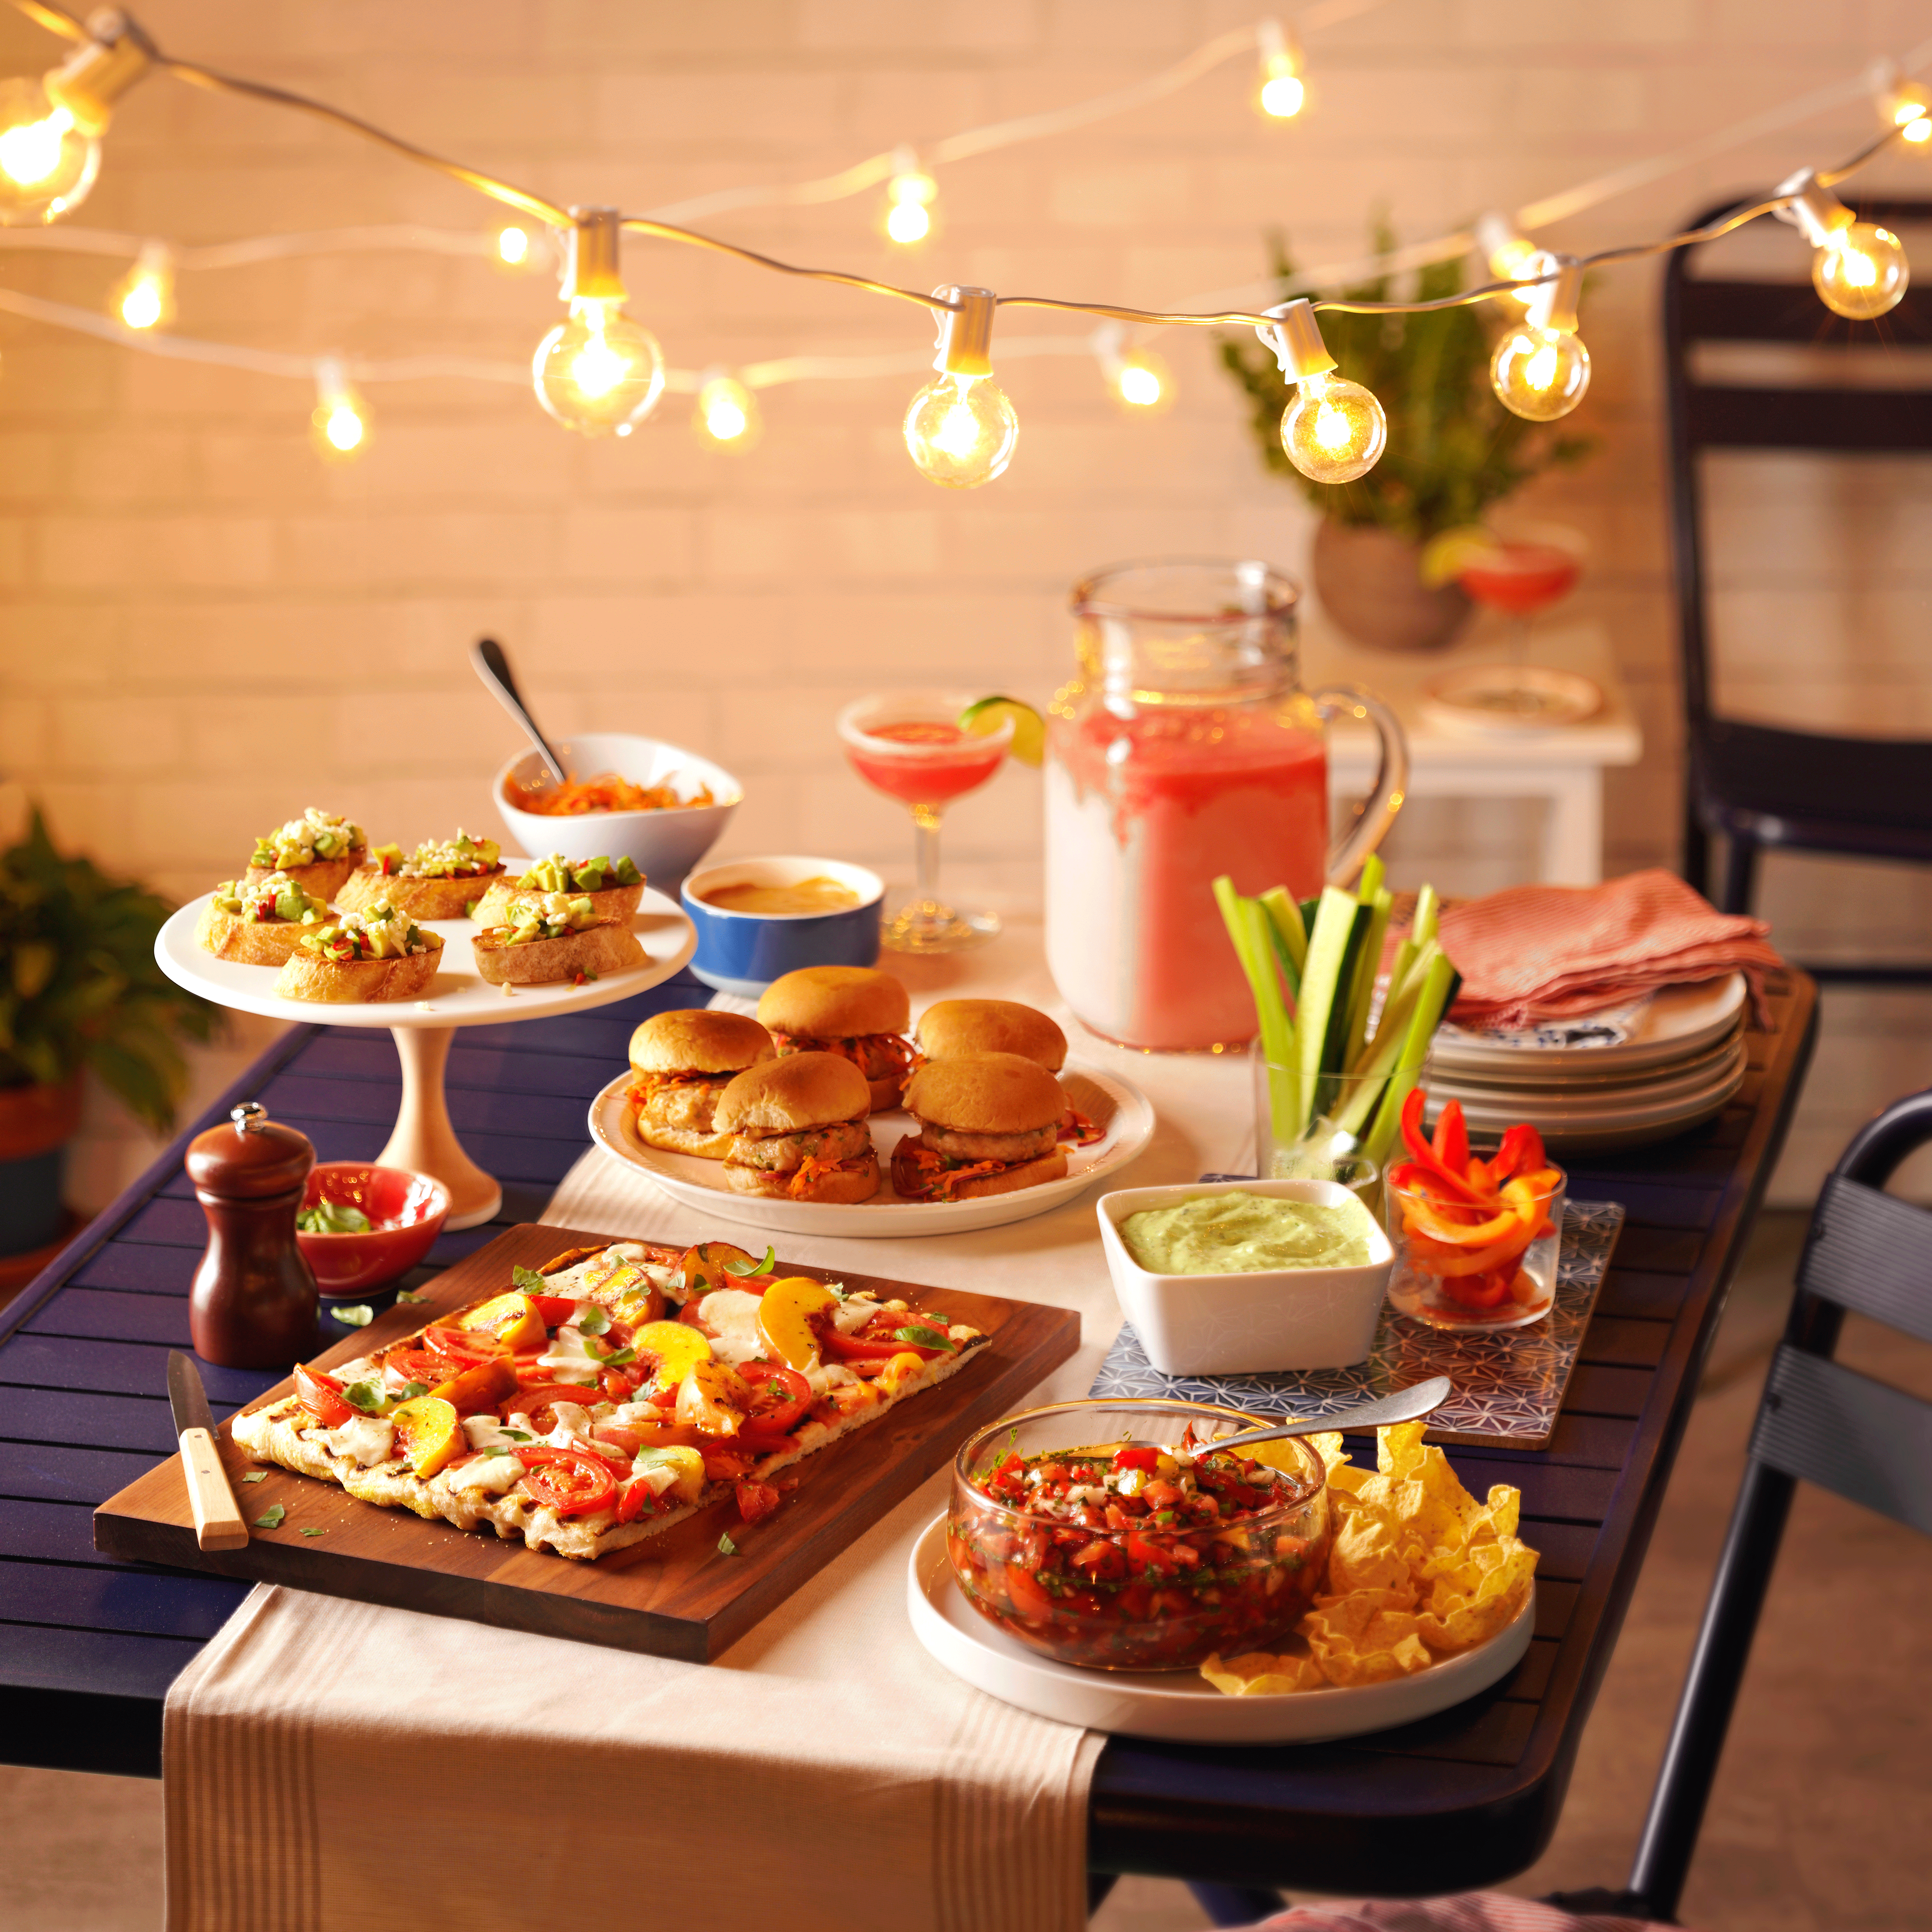 11 Insanely Smart Ideas for Your Backyard Party | Outdoor ...